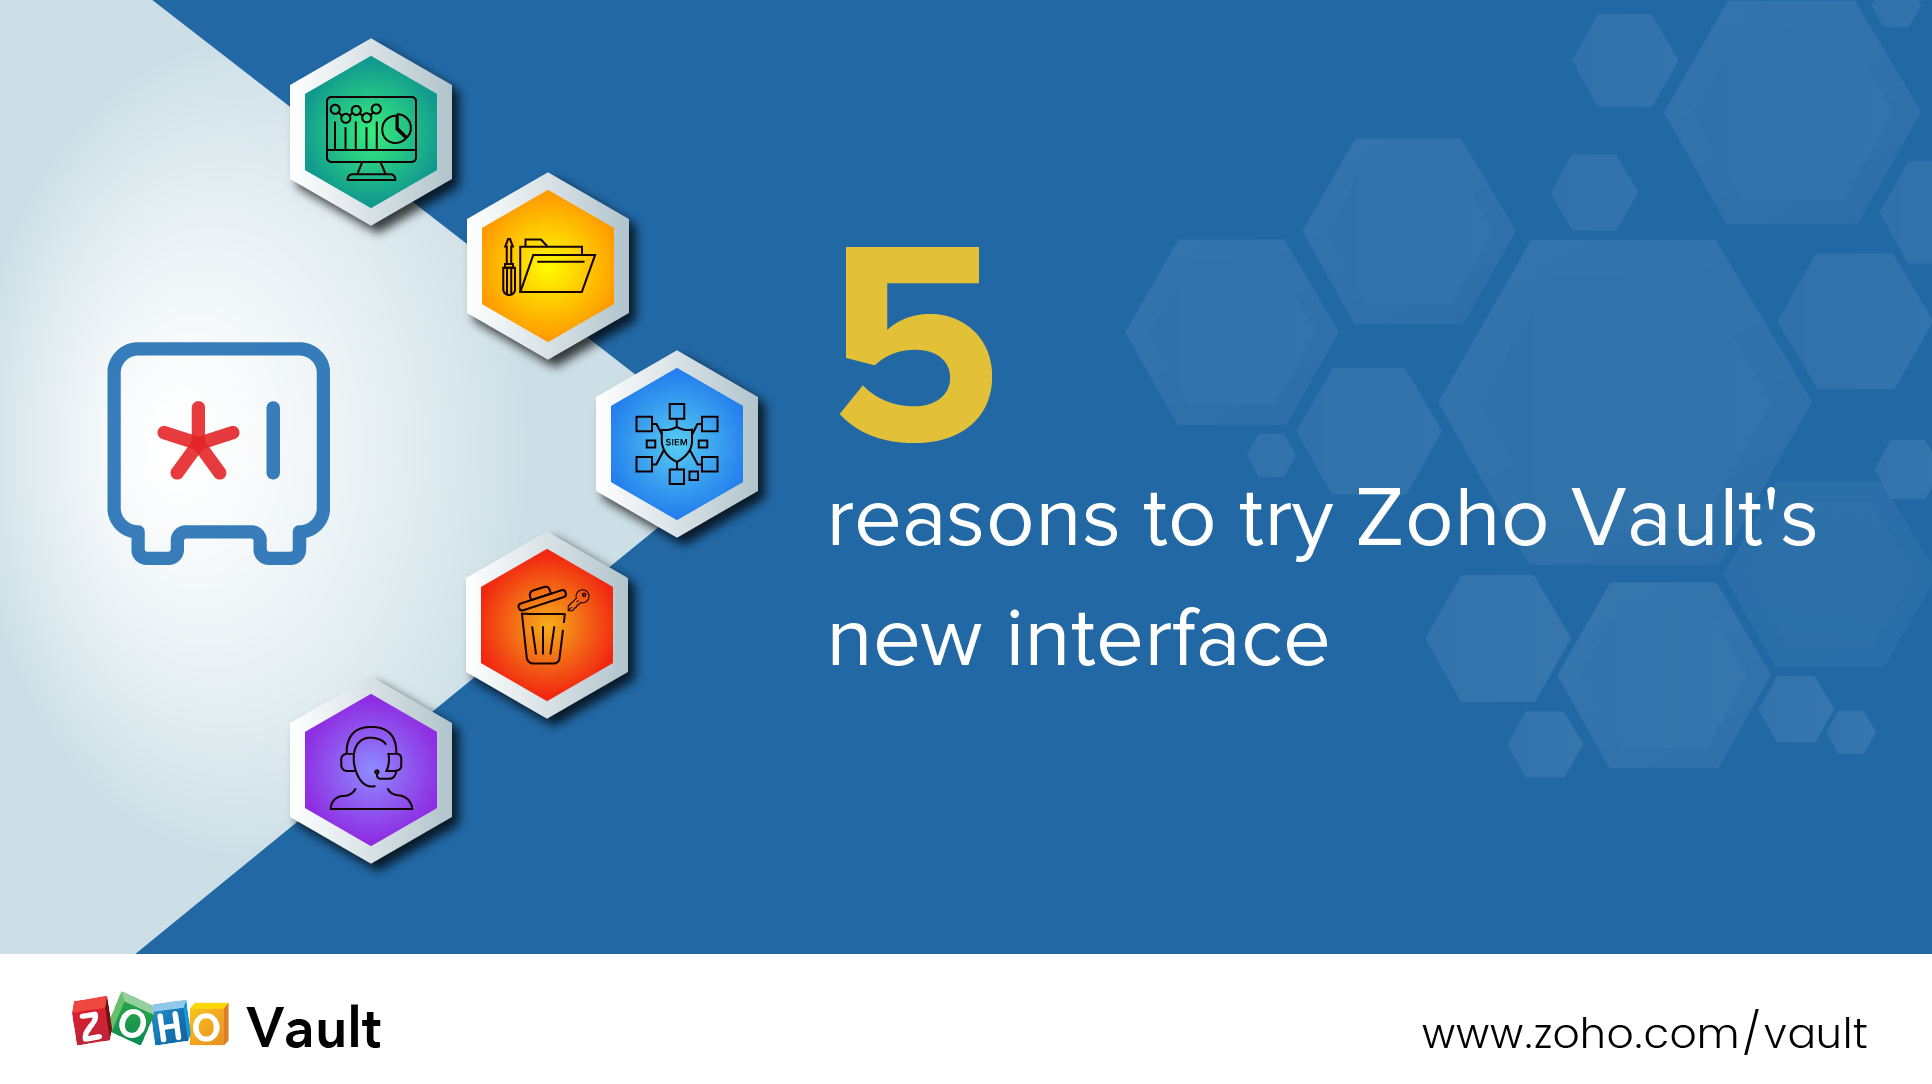 5 reasons to try Zoho Vault's new interface